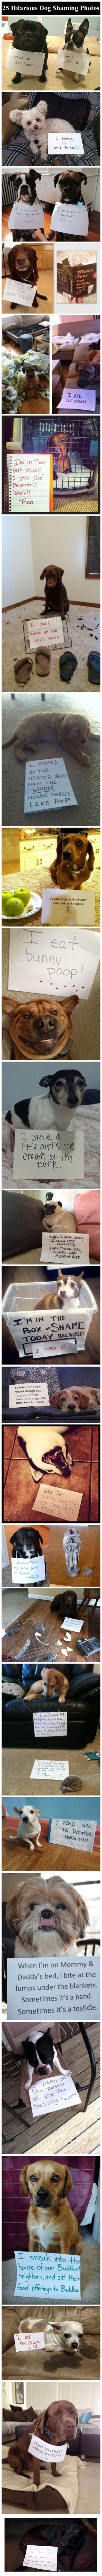 25 Hilarious Dog Shaming Photos Pictures, Photos, and Images for Facebook, Tumblr, Pintere...